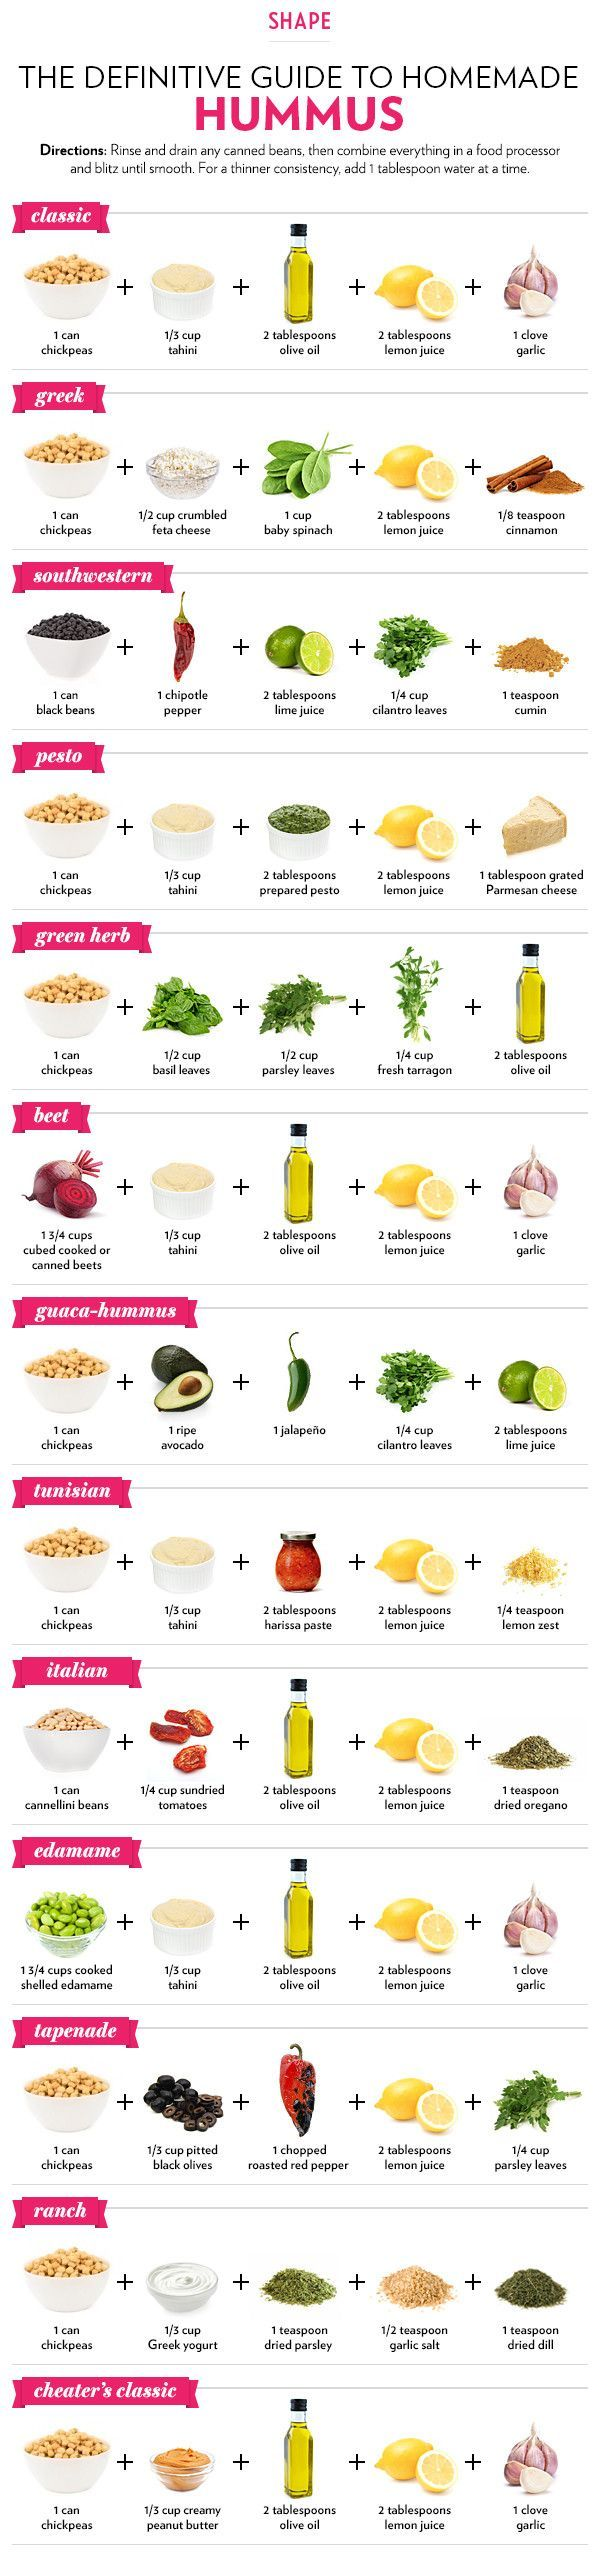 How-to make any type of hummus!